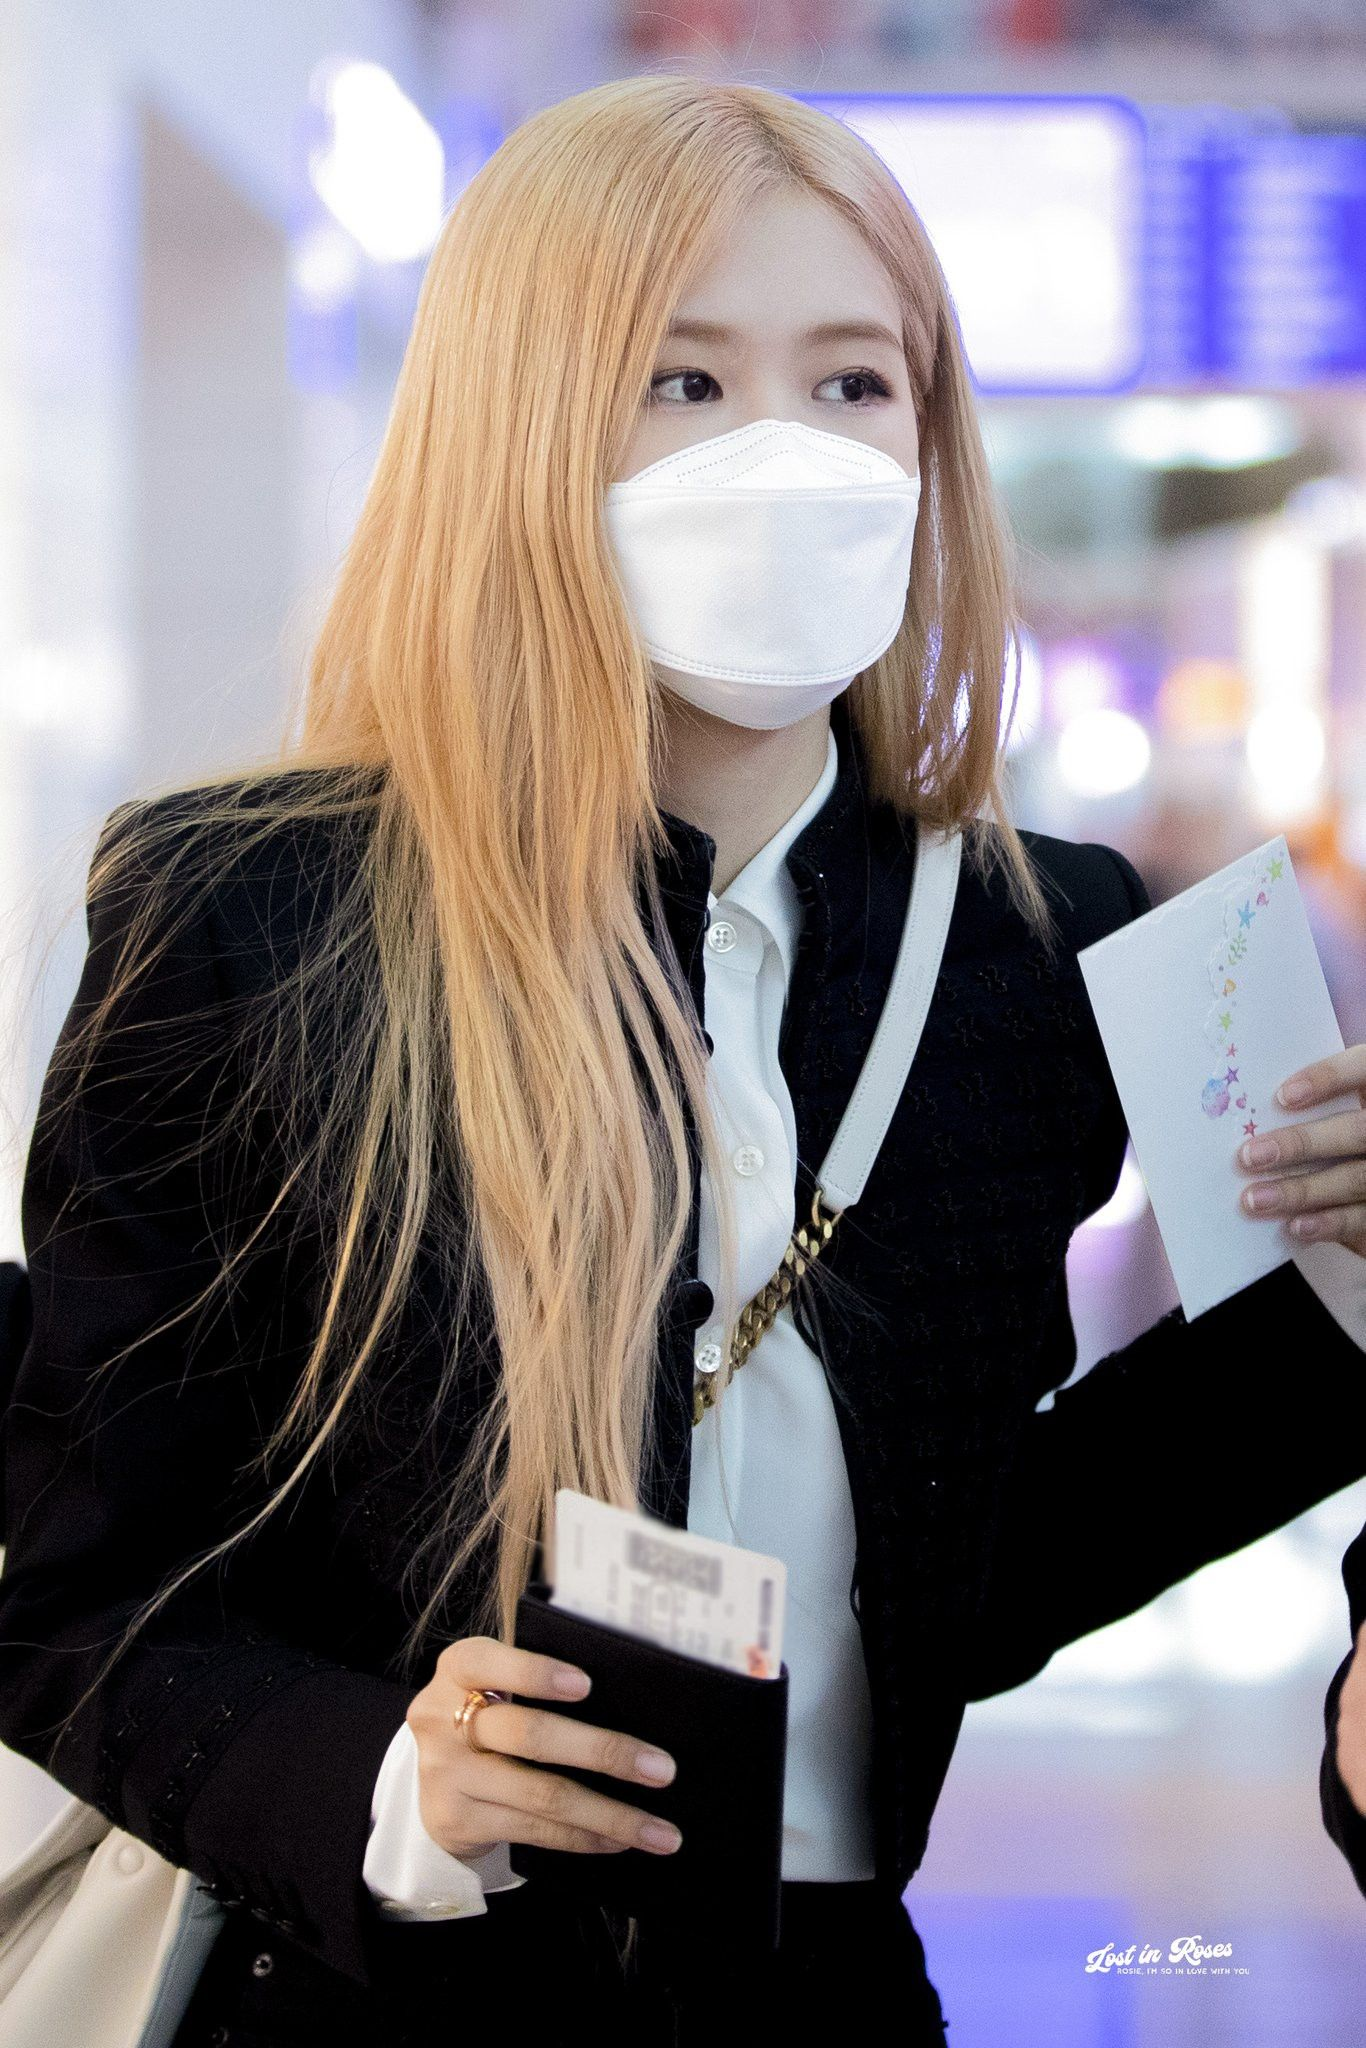 Pin on Rose Blackpink Airport Style